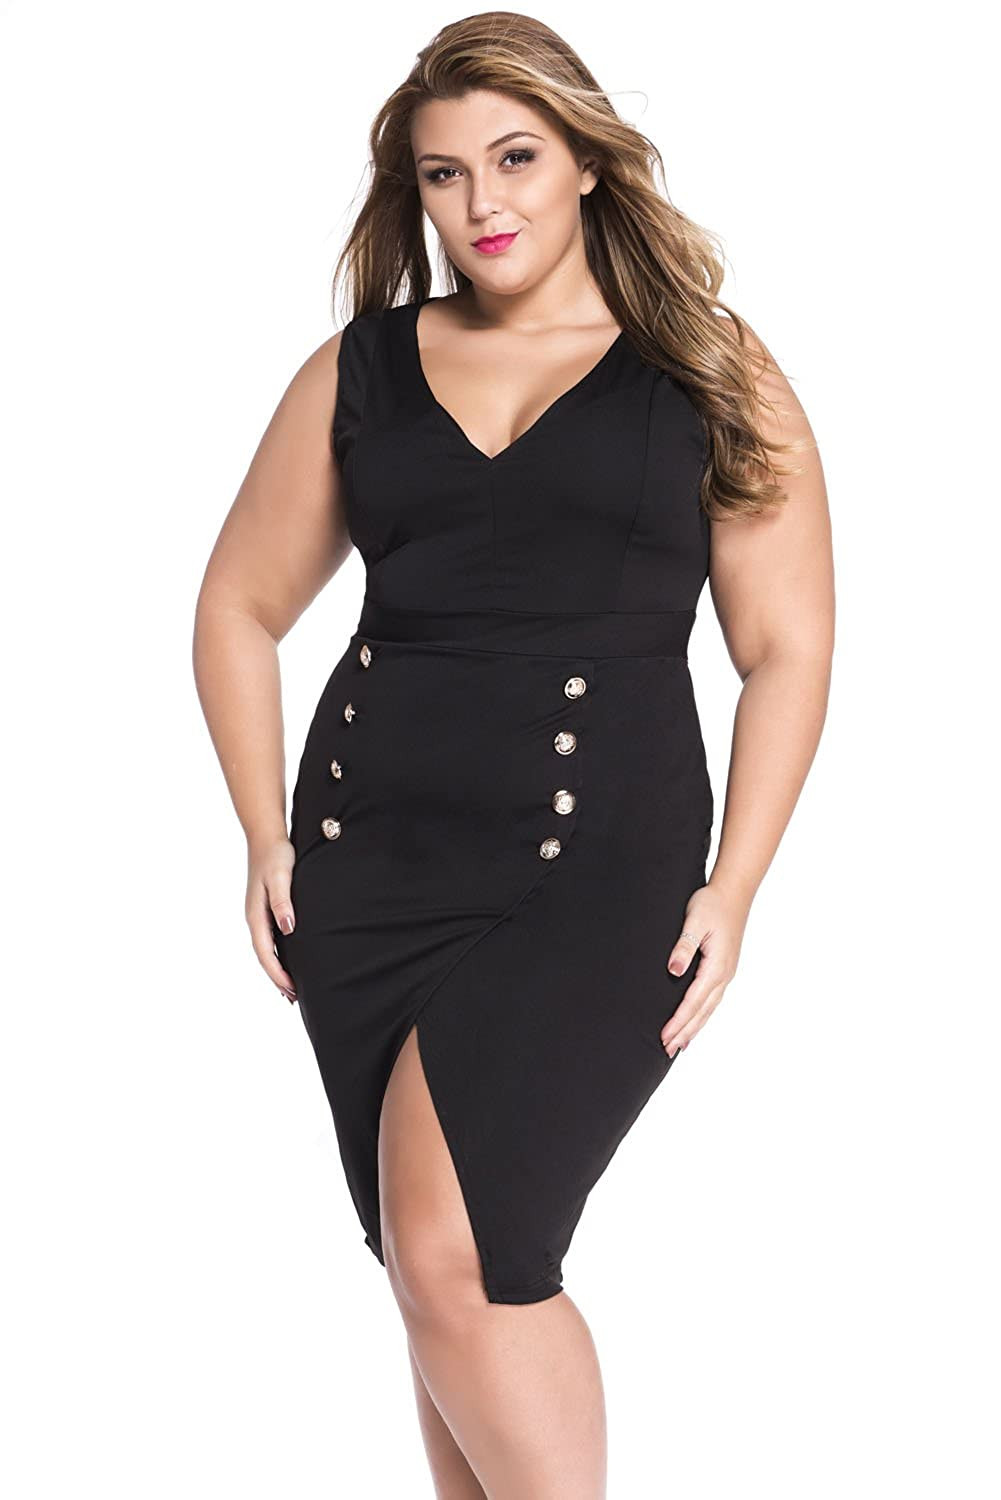 44b65e4b39aa Plus Size Cute Black Dresses